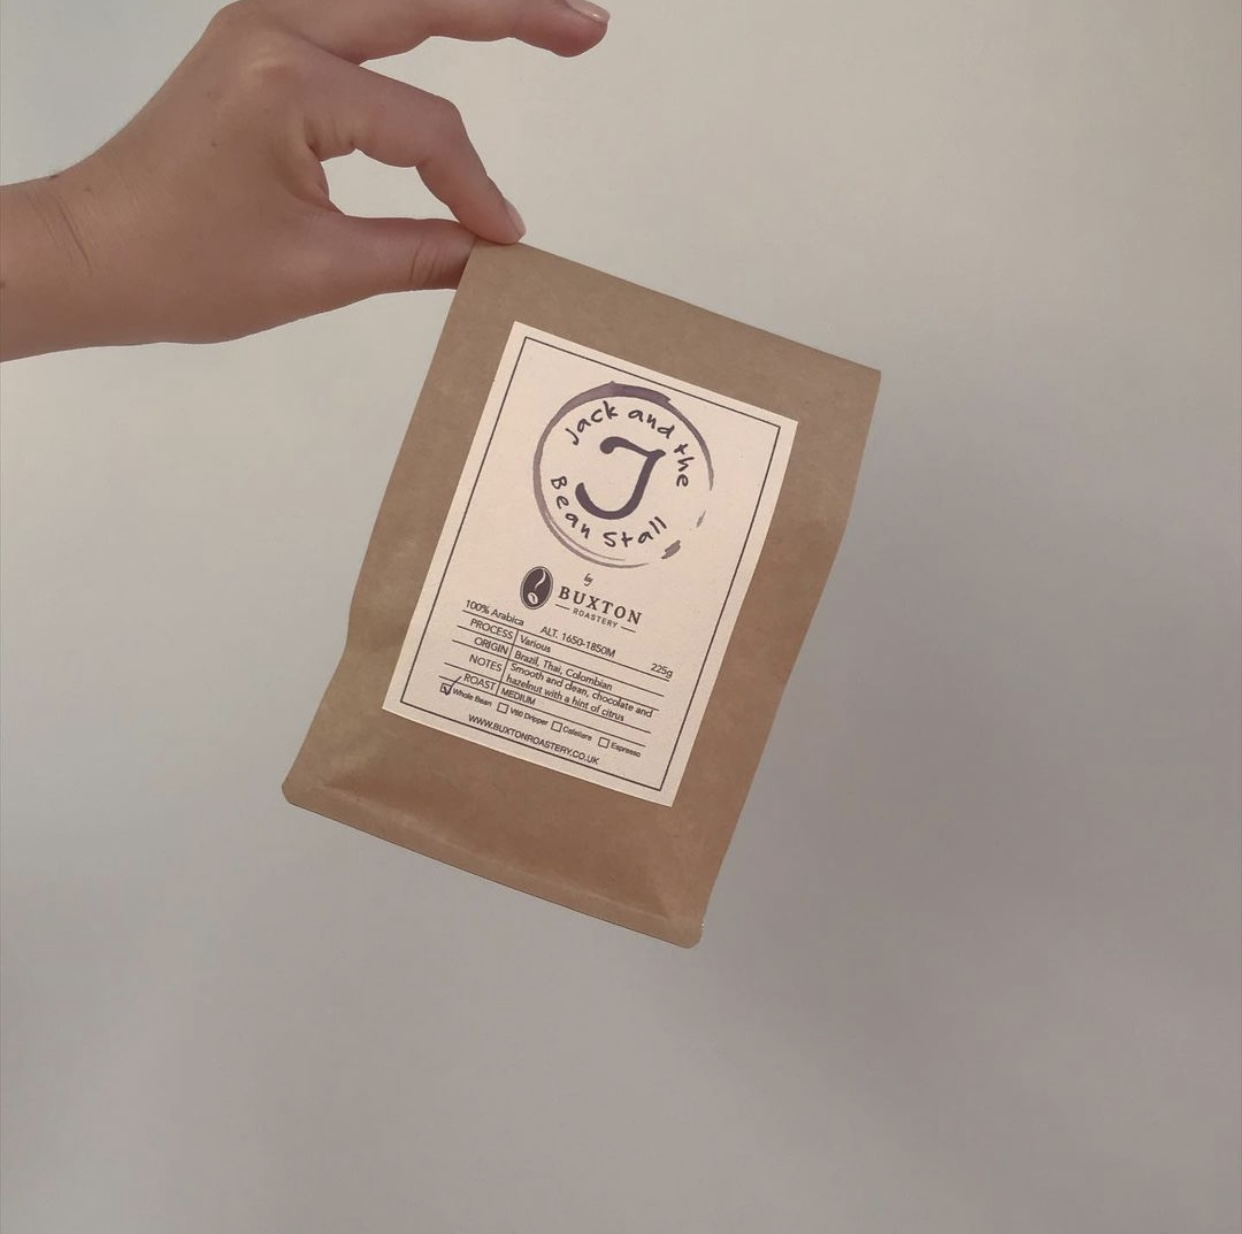 House blend 225g bag